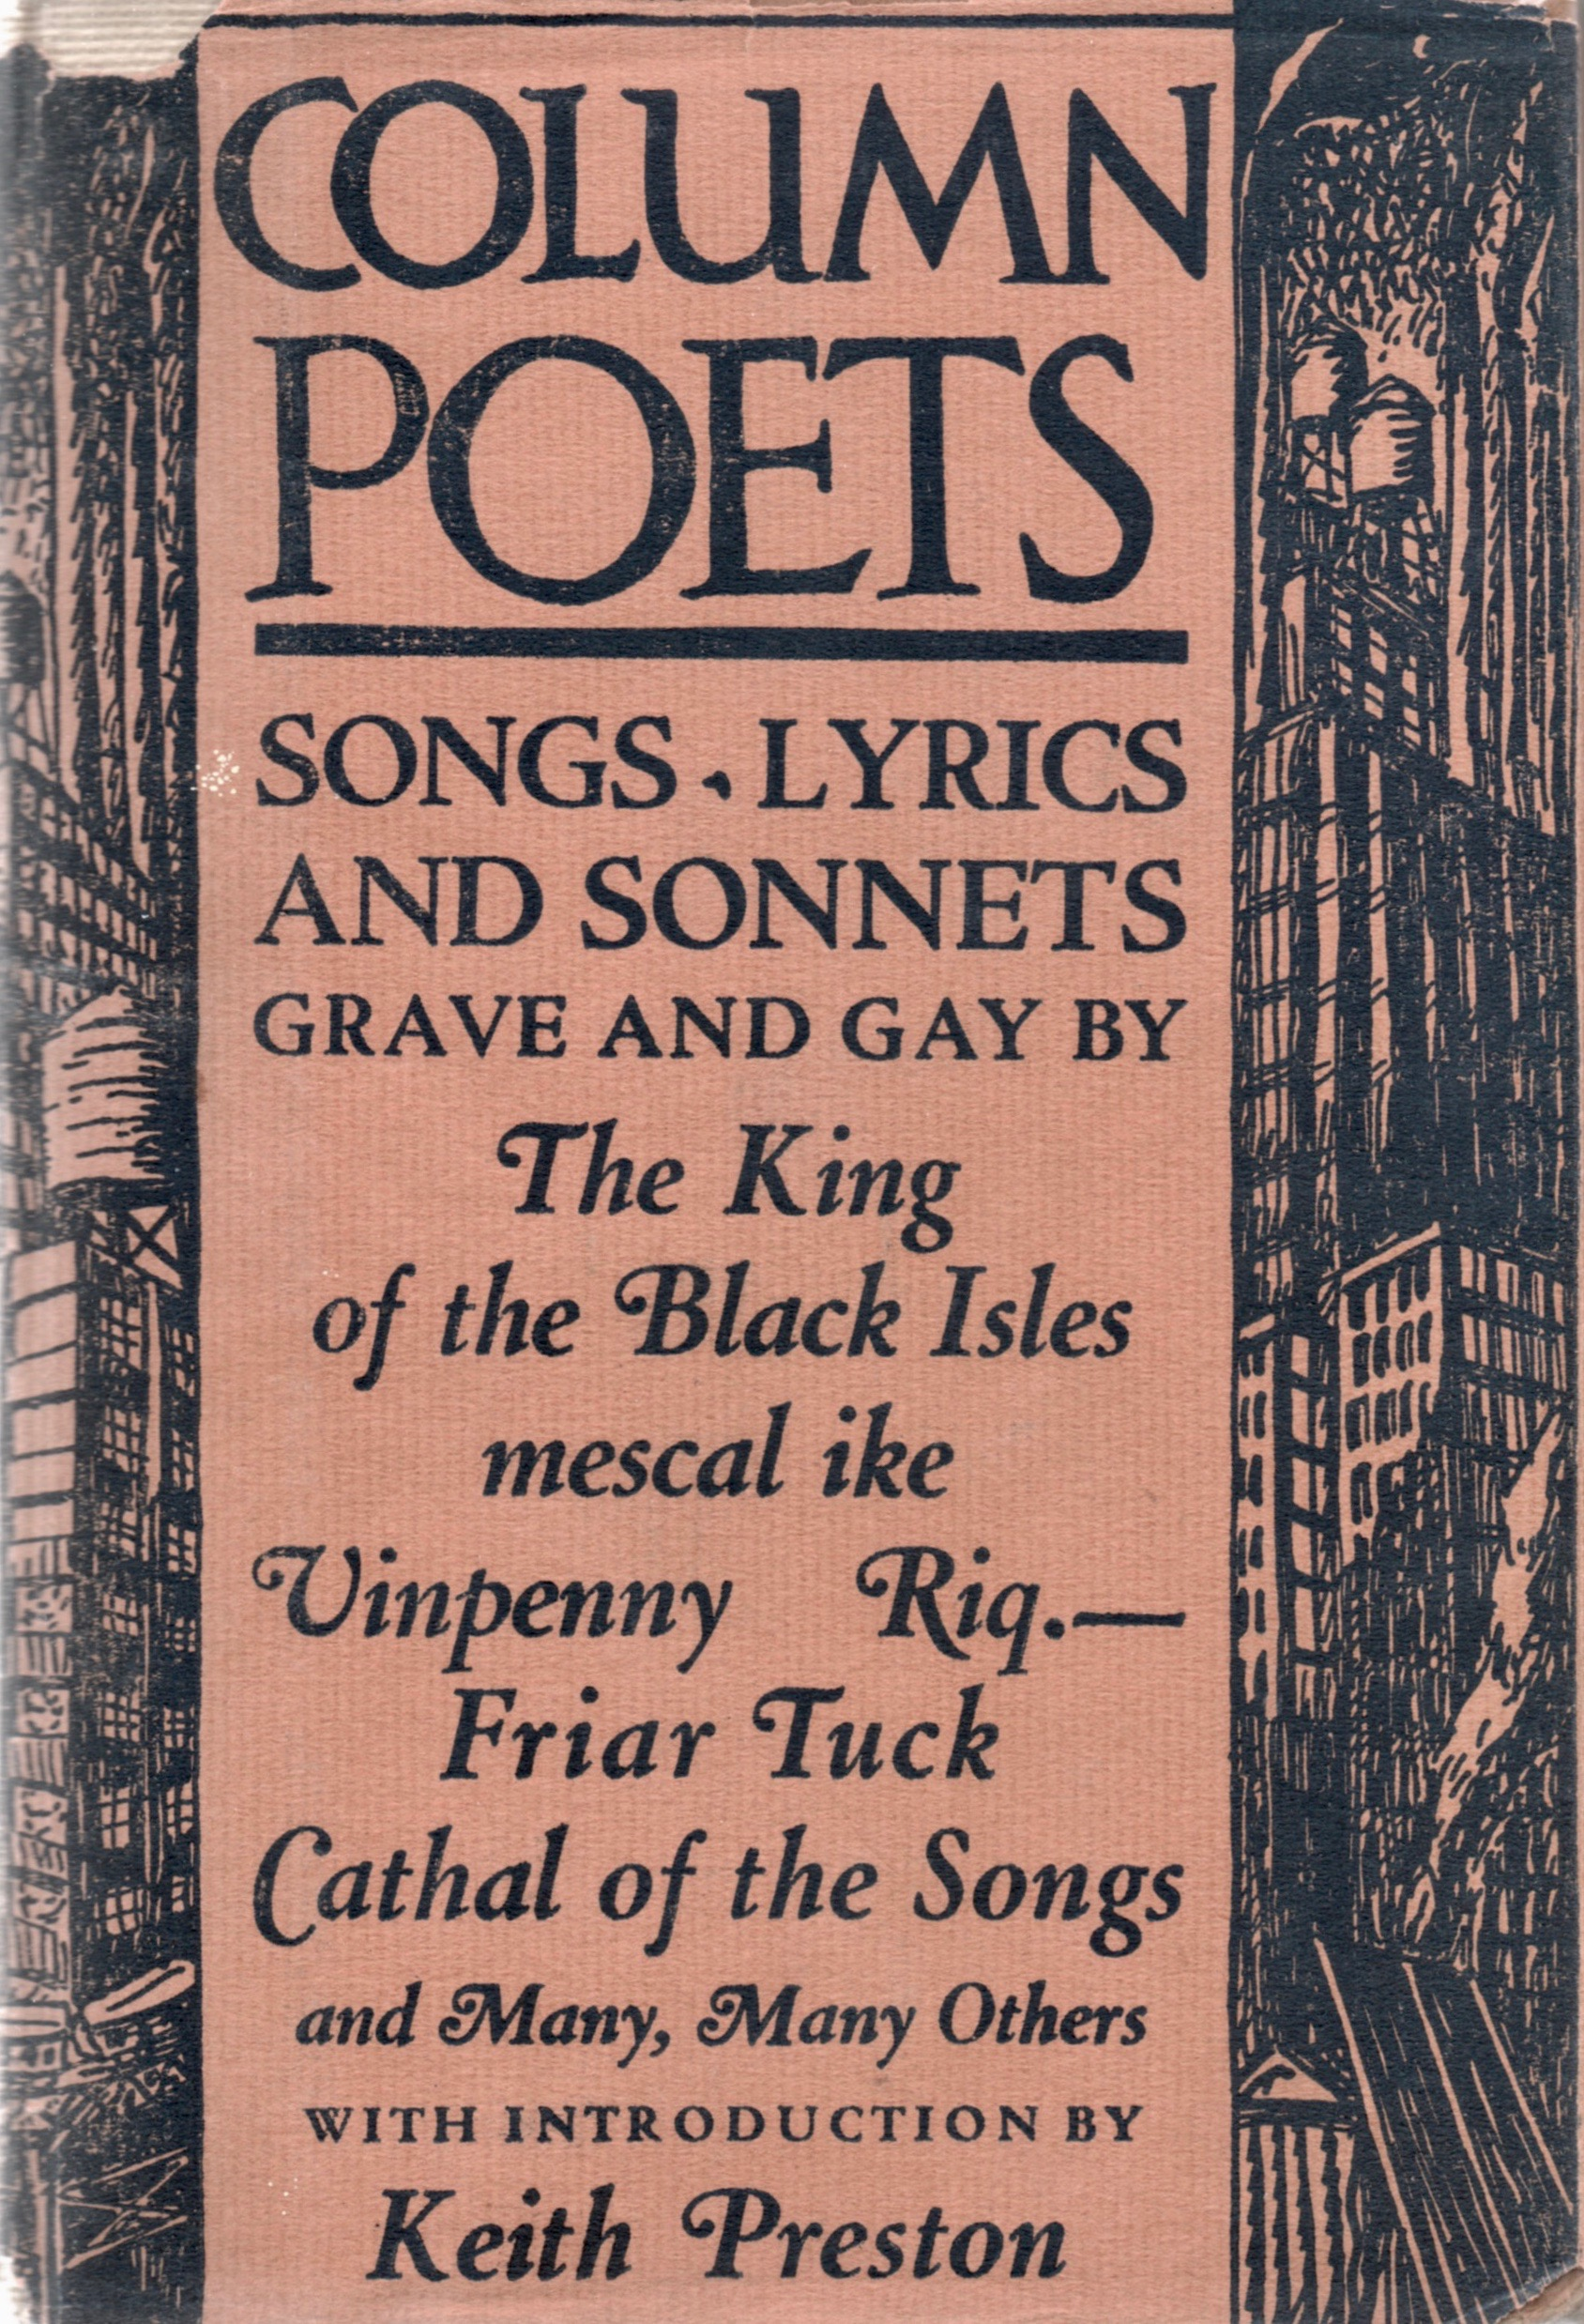 Starrett, or at least his poetic alias, made it on the dust jacket cover of the verse anthology,  Column Poets , published in 1924.